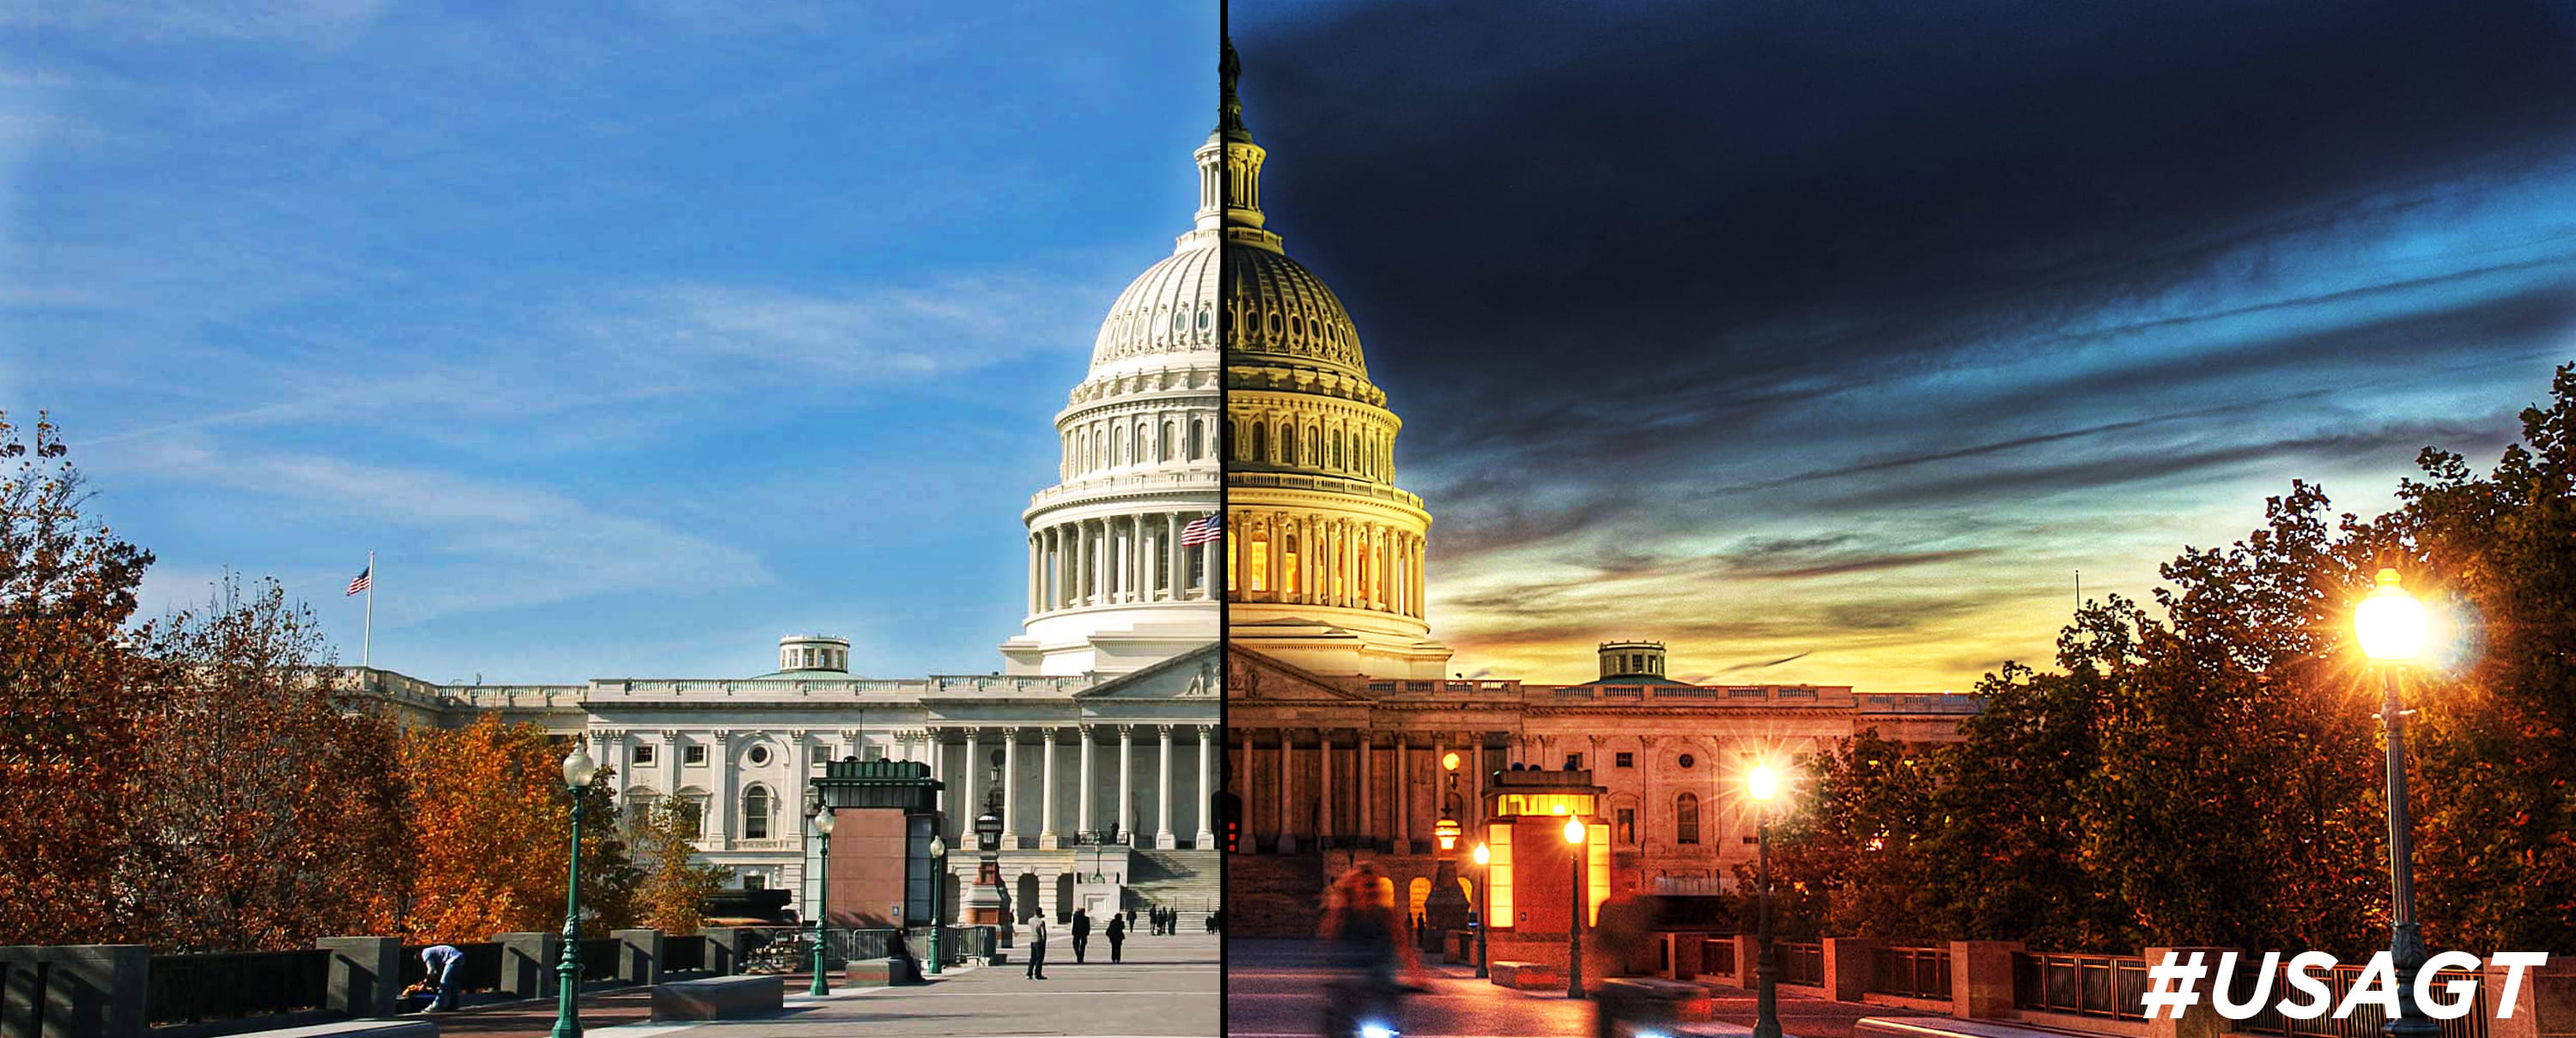 Capitol Building at Day & Night Time